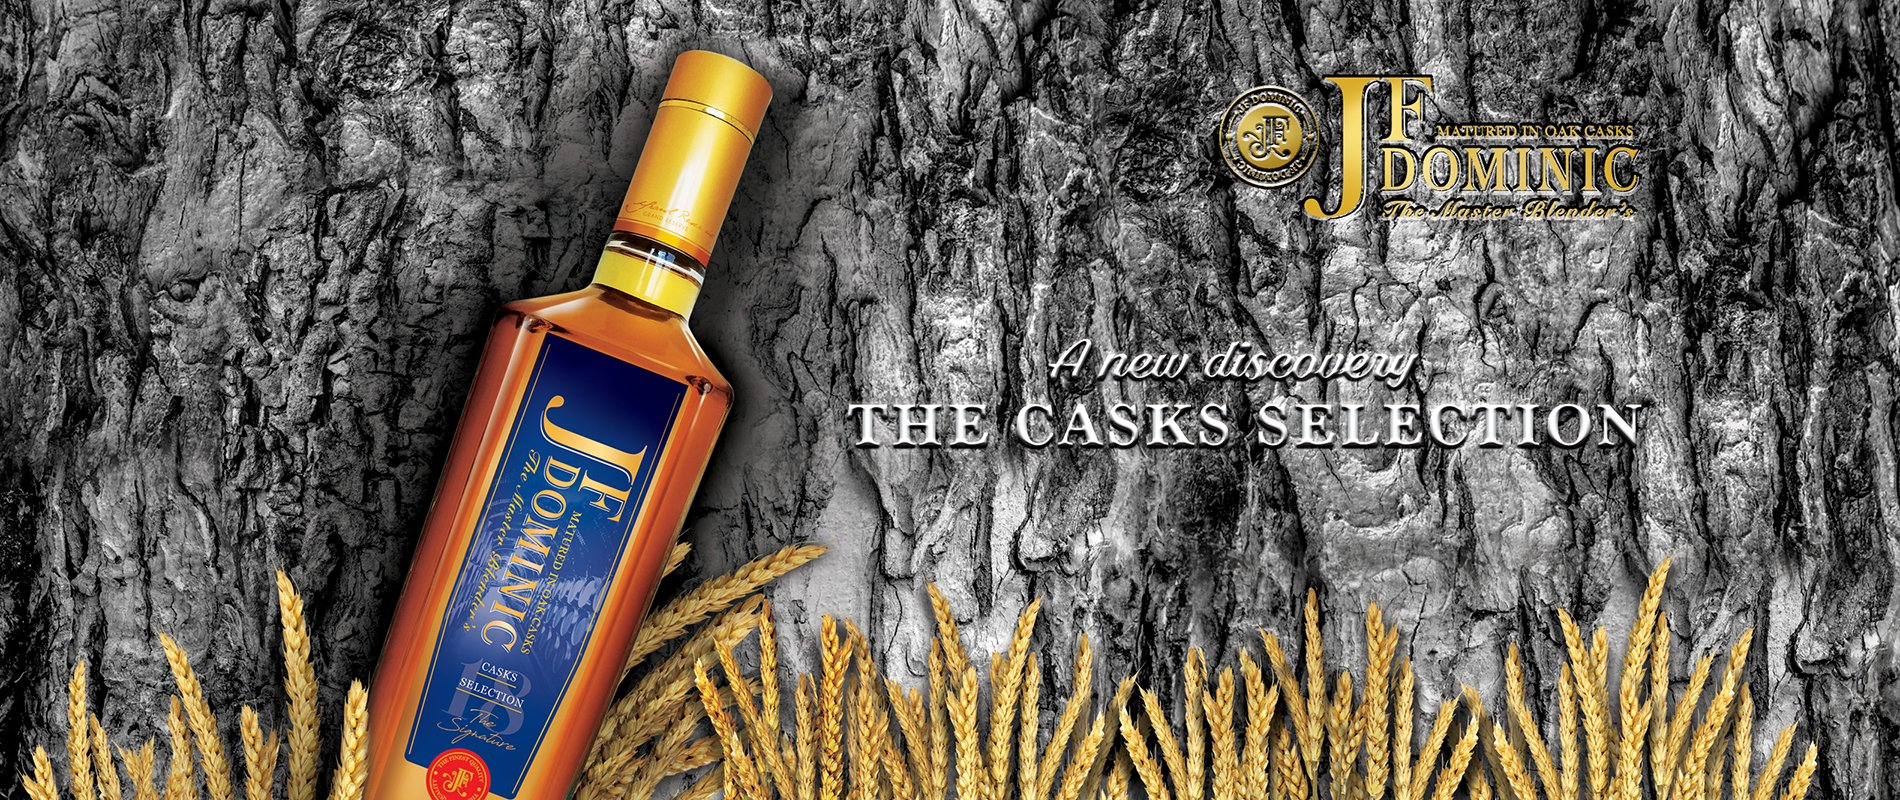 JF Dominic Casks Selections The Master Blender's of Premium Selection